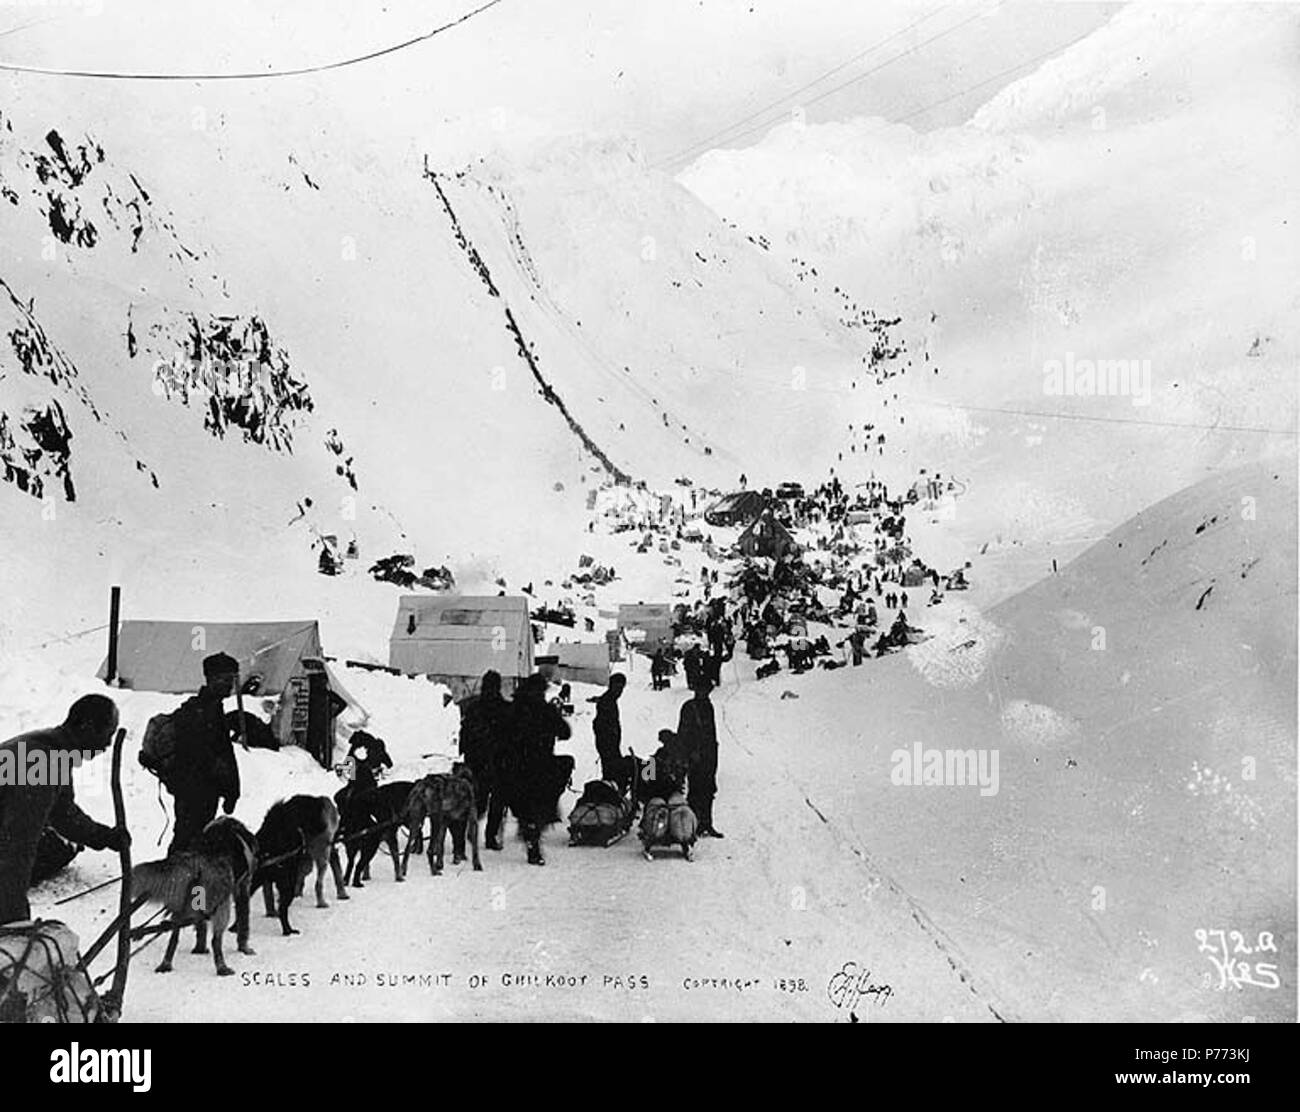 . English: Klondikers with supplies at The Scales, preparing to ascend to the summit of Chilkoot Pass, Alaska, March 1898. English: Caption on image: 'Scales and summit of Chilkoot Pass March 1898' Original image in Hegg Album 1, page 29 . Original photograph by Eric A. Hegg 105A; copied by Webster and Stevens 292.A Subjects (LCTGM): Sleds & sleighs--Alaska--Chilkoot Pass; Sled dogs--Alaska--Chilkoot Pass Subjects (LCSH): Chilkoot Trail; Trails--Alaska; Chilkoot Pass (Alaska); Mountain passes--Alaska  . Unknown date 7 Klondikers with supplies at The Scales, preparing to ascend to the summit of - Stock Image